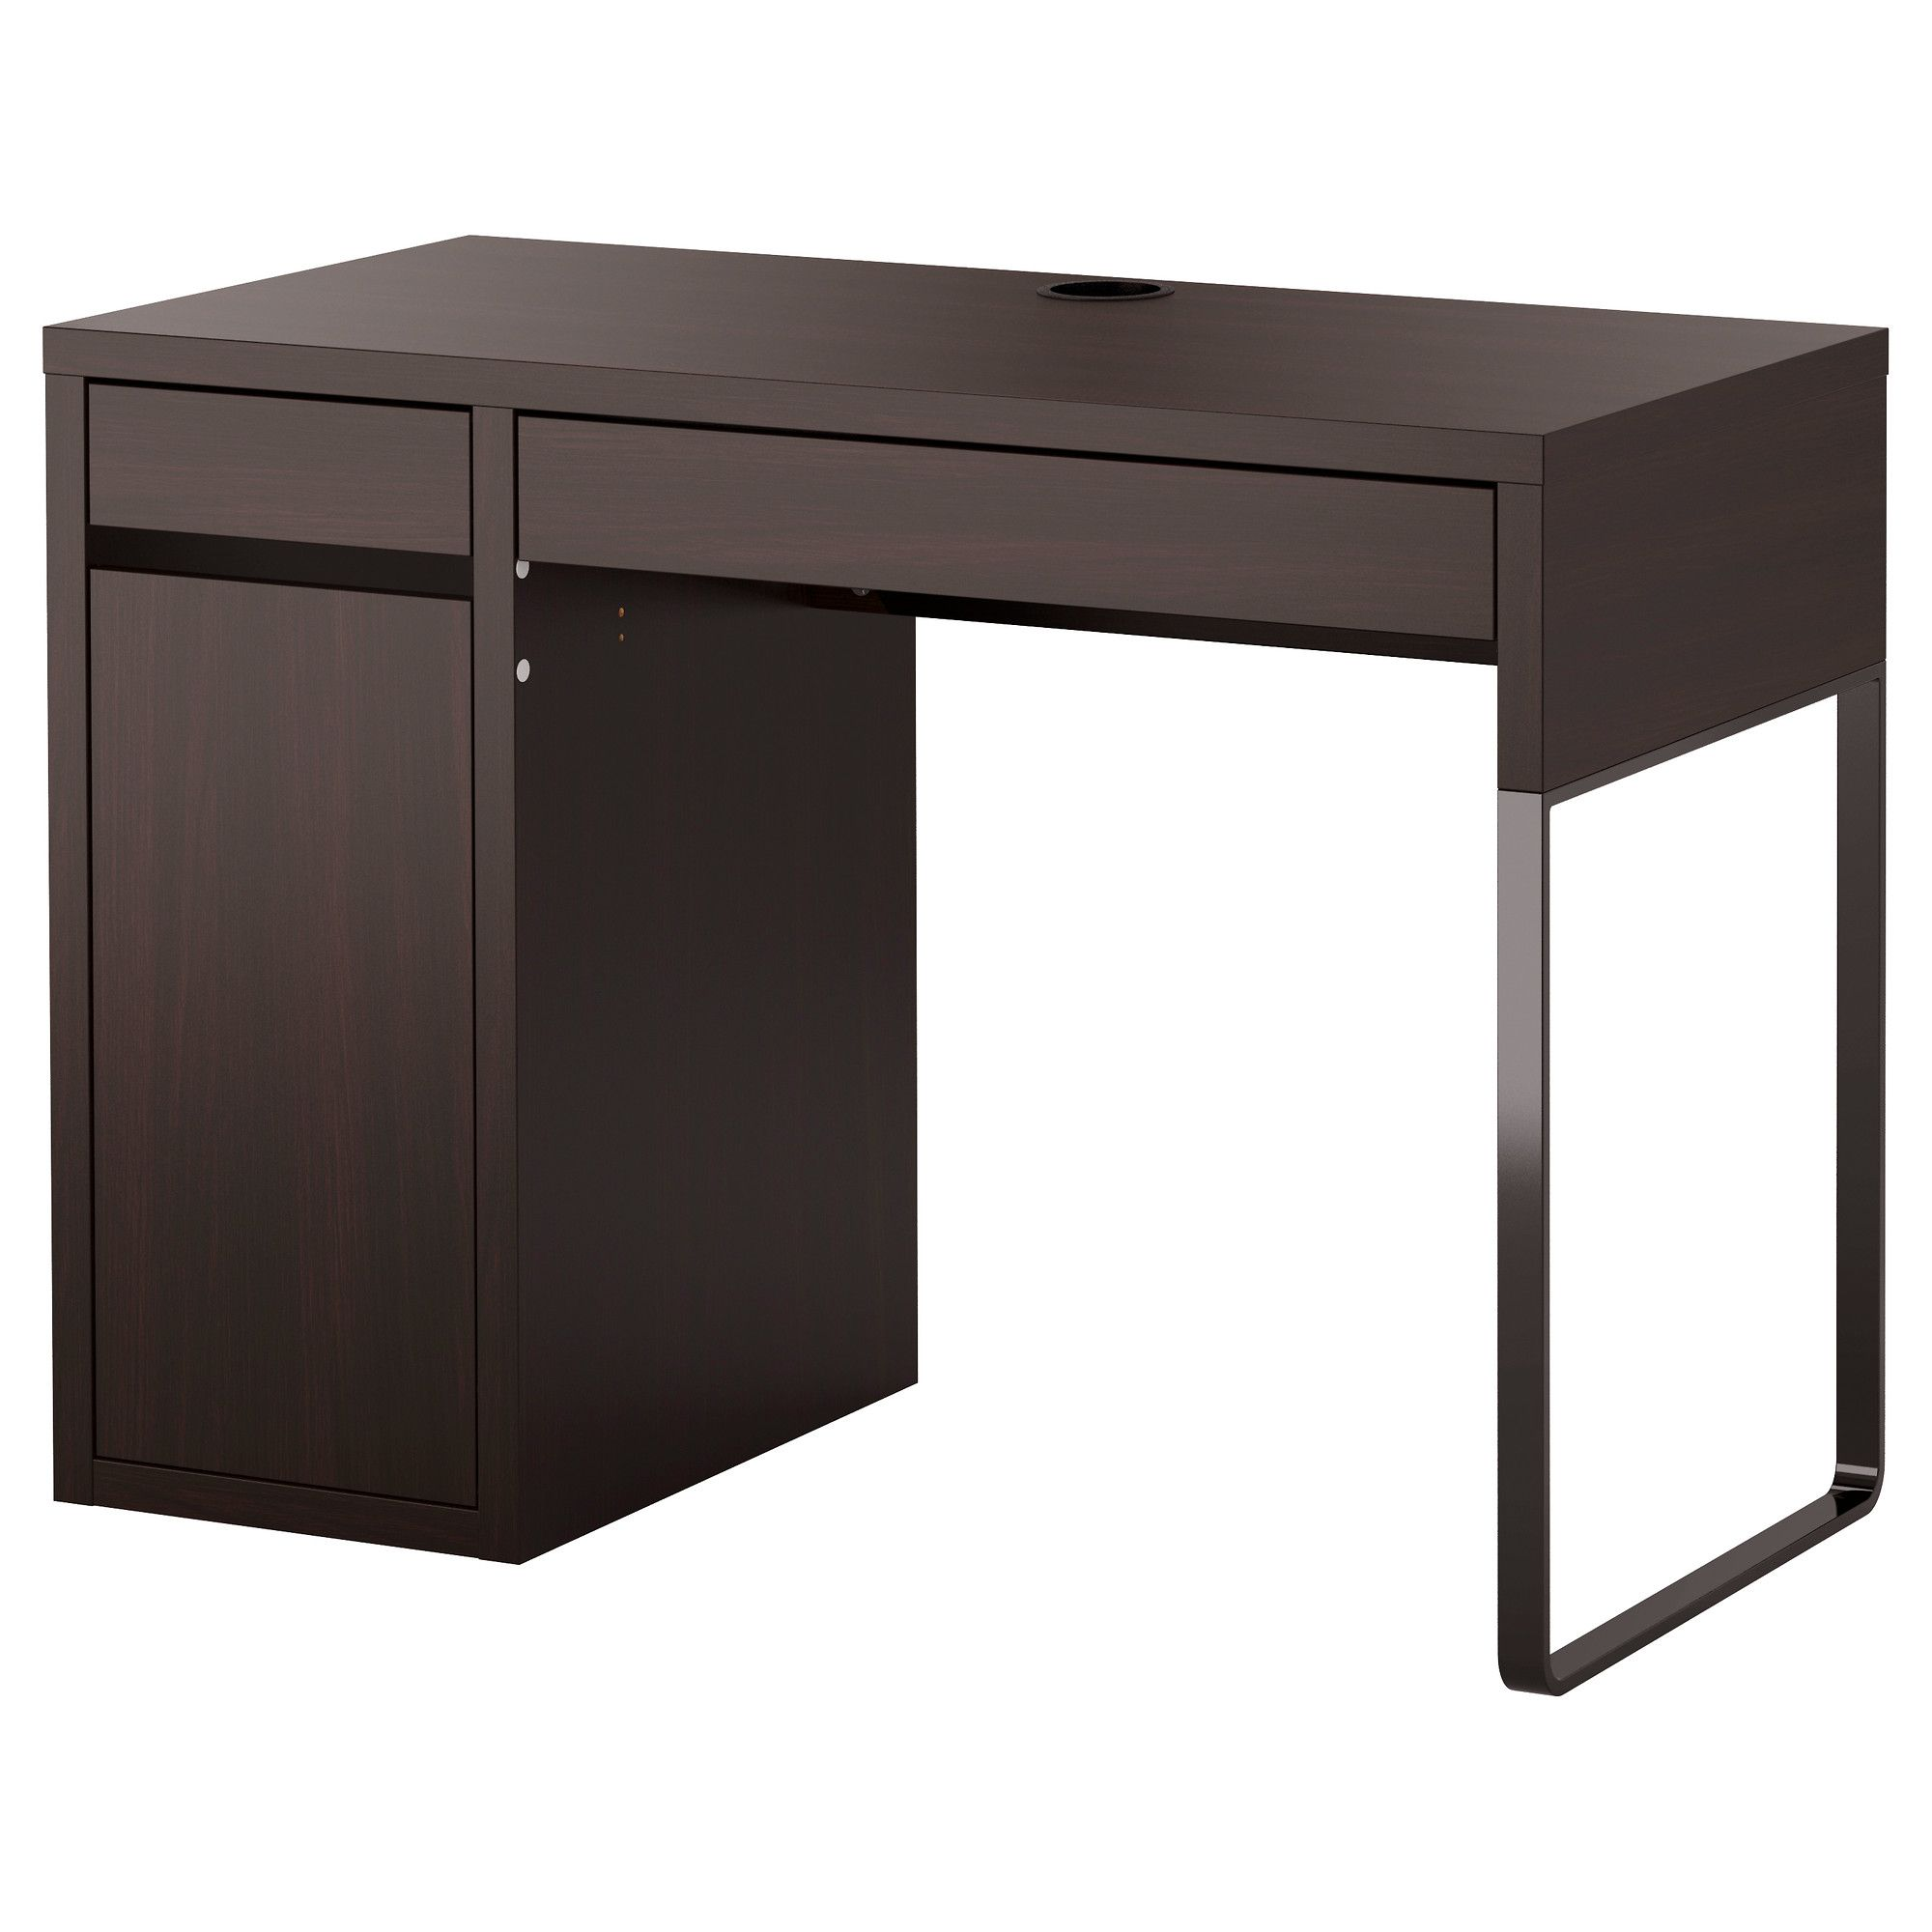 MICKE Bureau brunnoir Micke desk Desks and Work surface